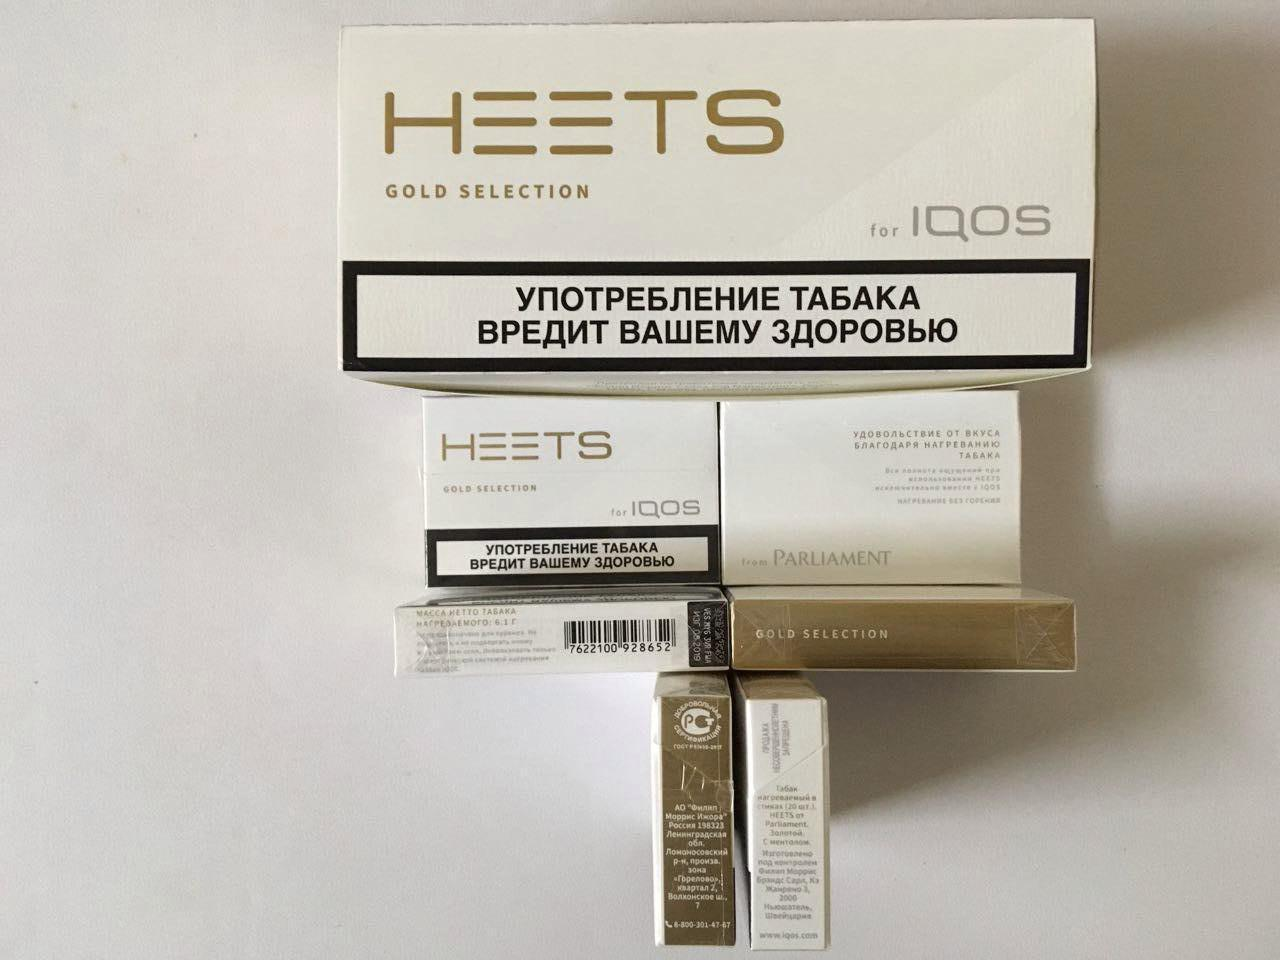 We offer favorable wholesale prices for Stik Heets Iqos - 2